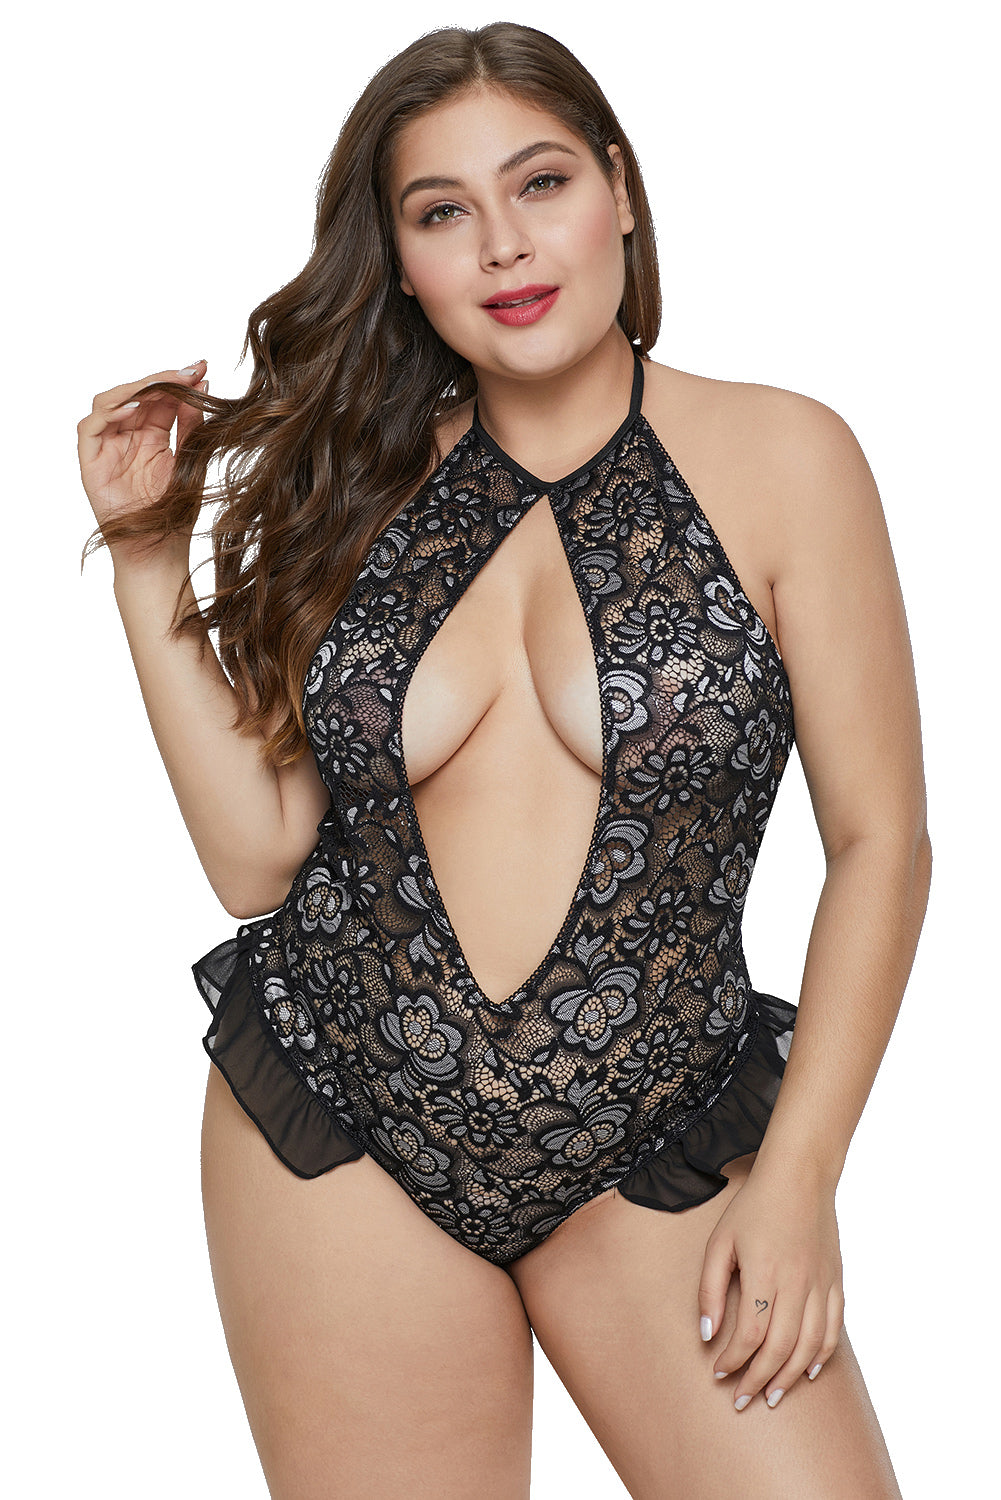 Halter Hollow-out Front Floral Plus Size Teddy Lingerie